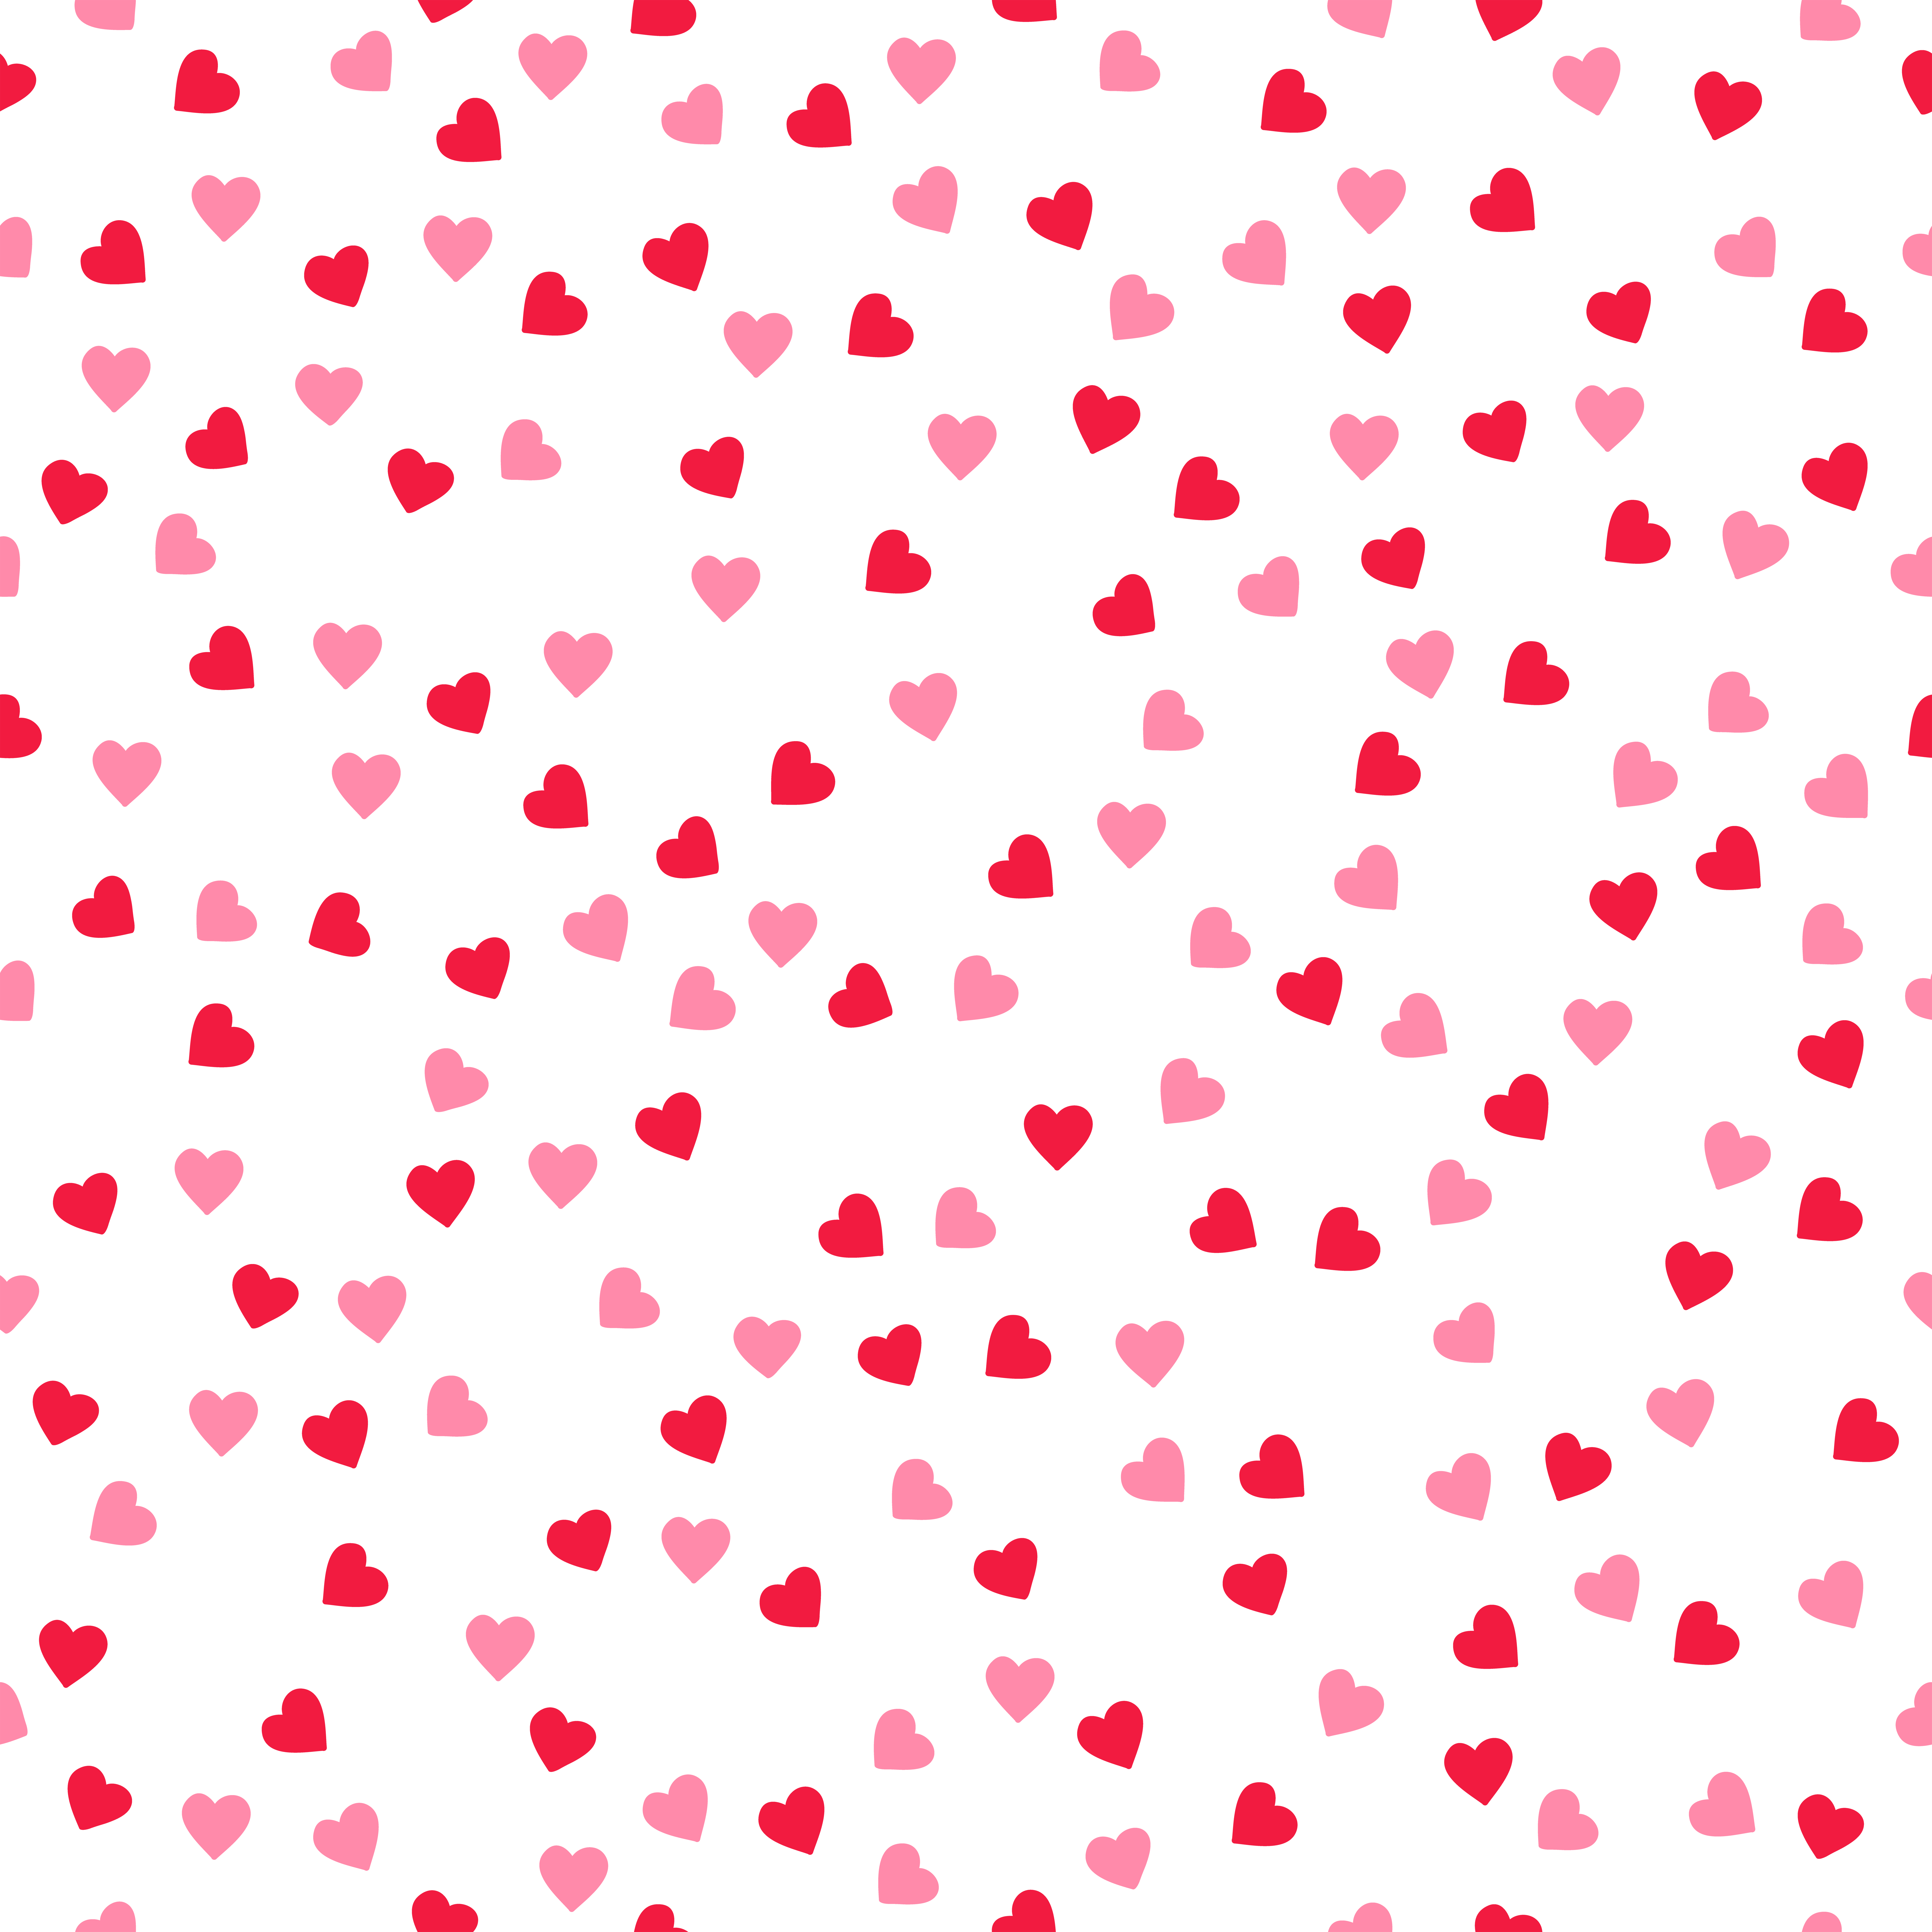 Hearts Pattern Transparent Image Gallery Yopriceville High Quality Images And Transparent Png Free Clipart Heart Patterns Free Clip Art Pattern